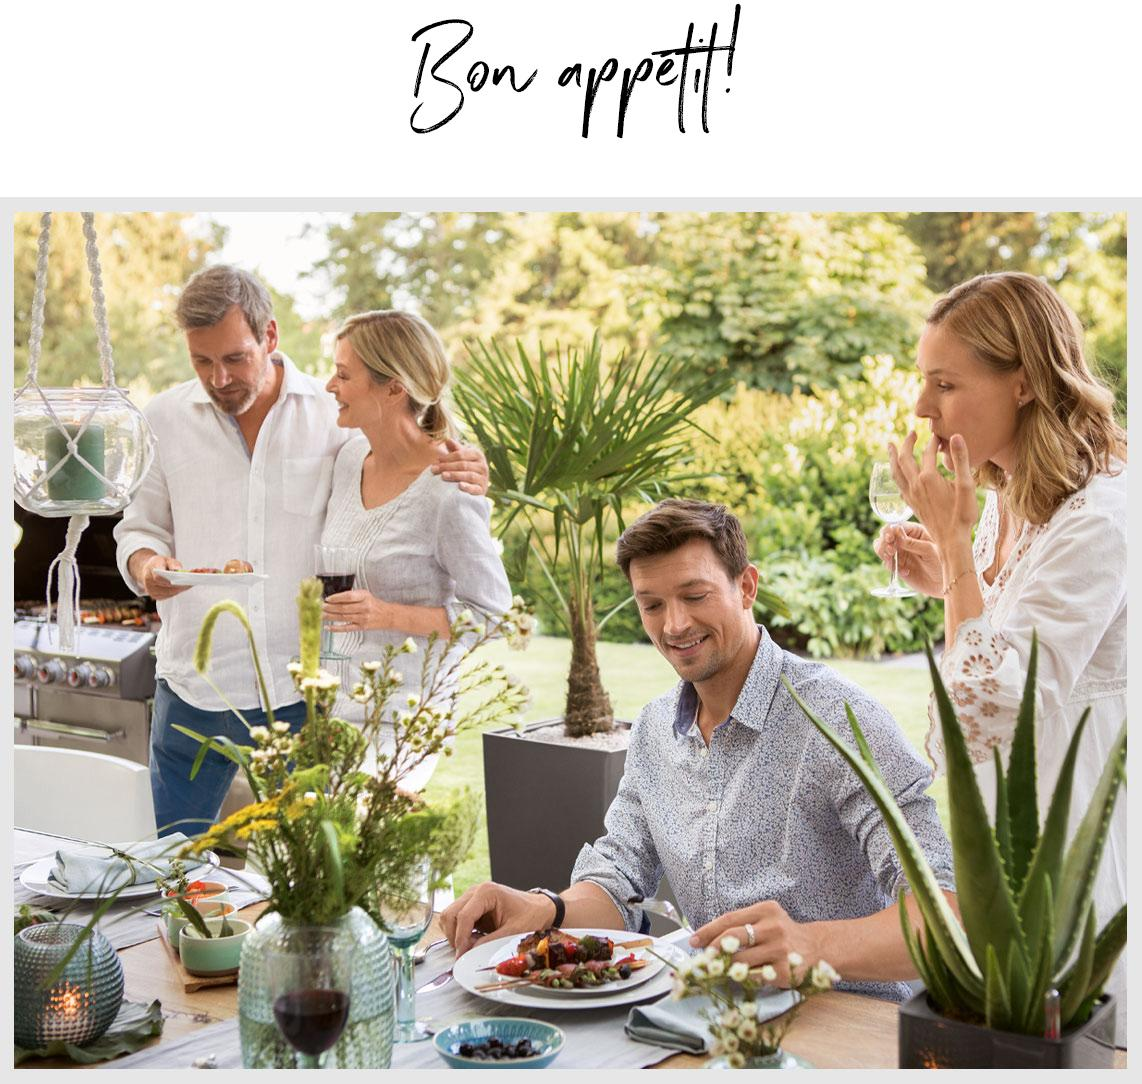 Four friends sit down to dinner at a beautifully laid table outdoors.